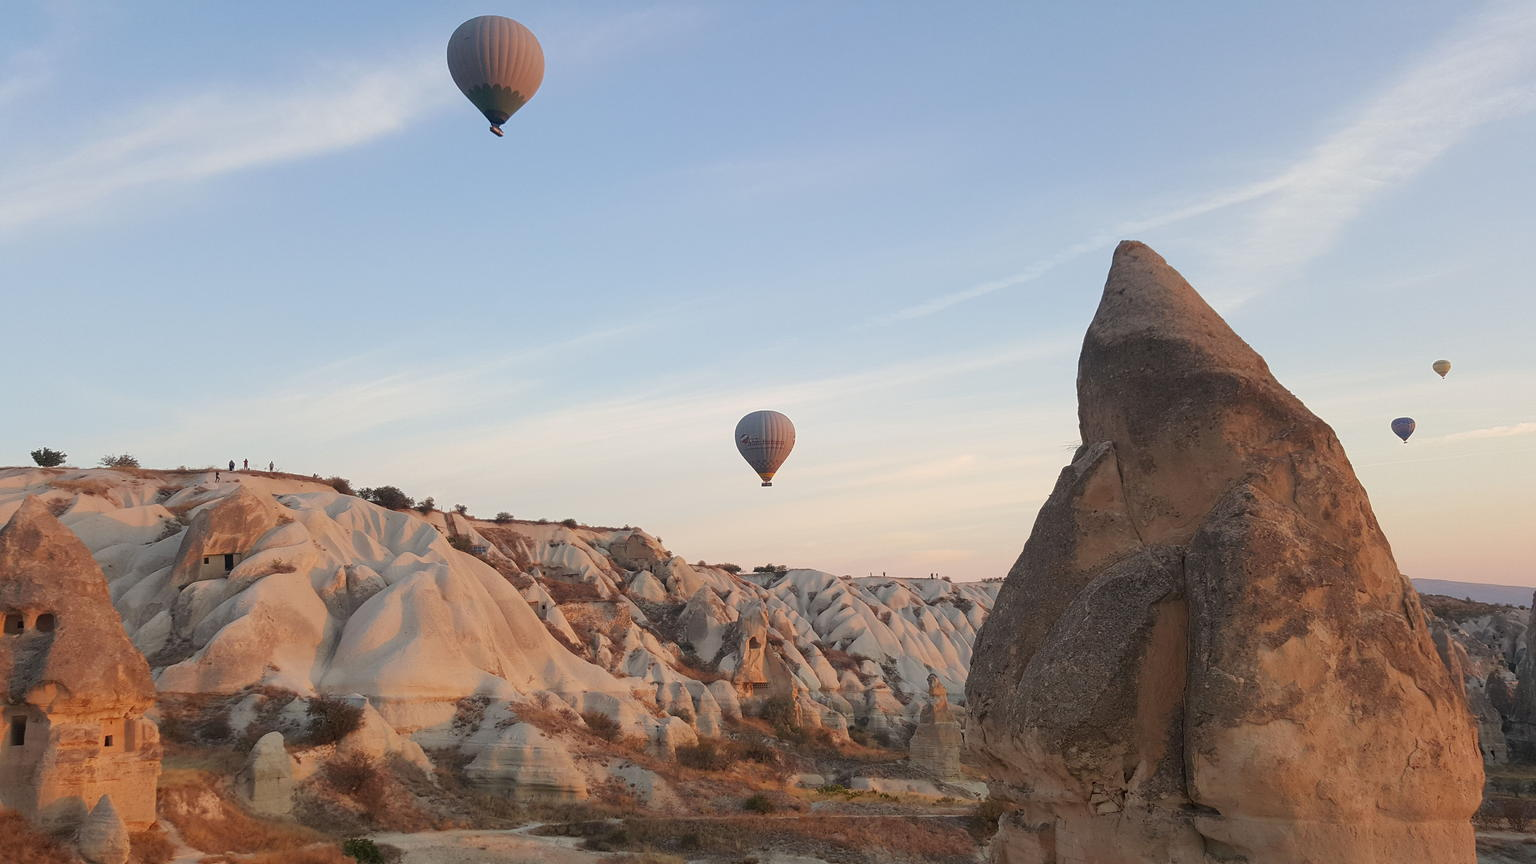 MORE PHOTOS, 1-hour Hot Air Balloon Flight Over the Fairy Chimneys in Cappadocia